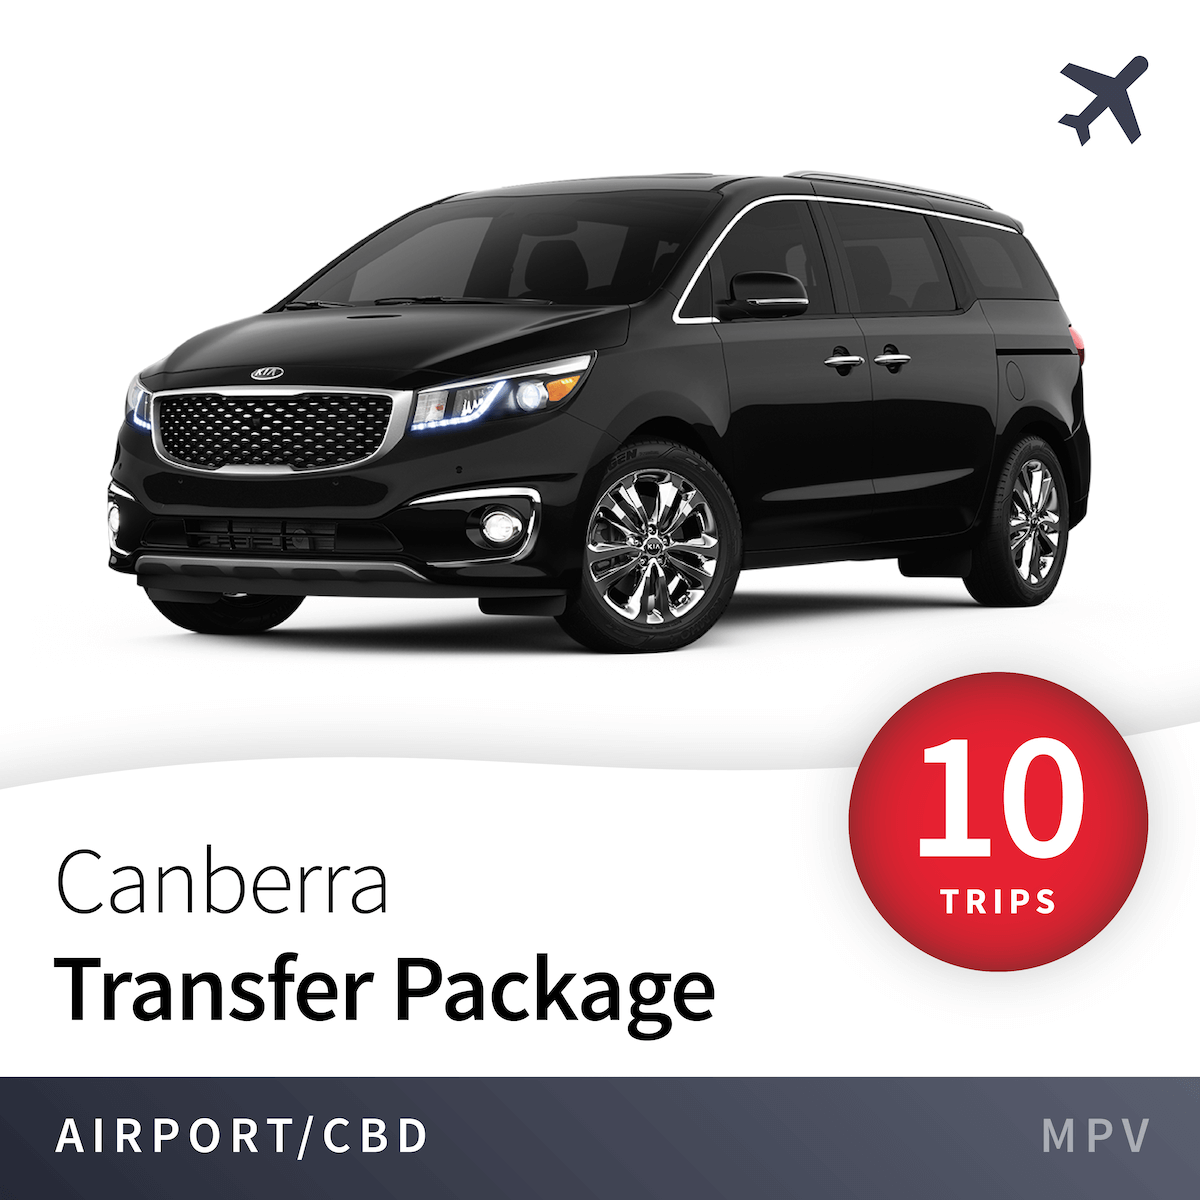 Canberra Airport Transfer Package - MPV (10 Trips) 7